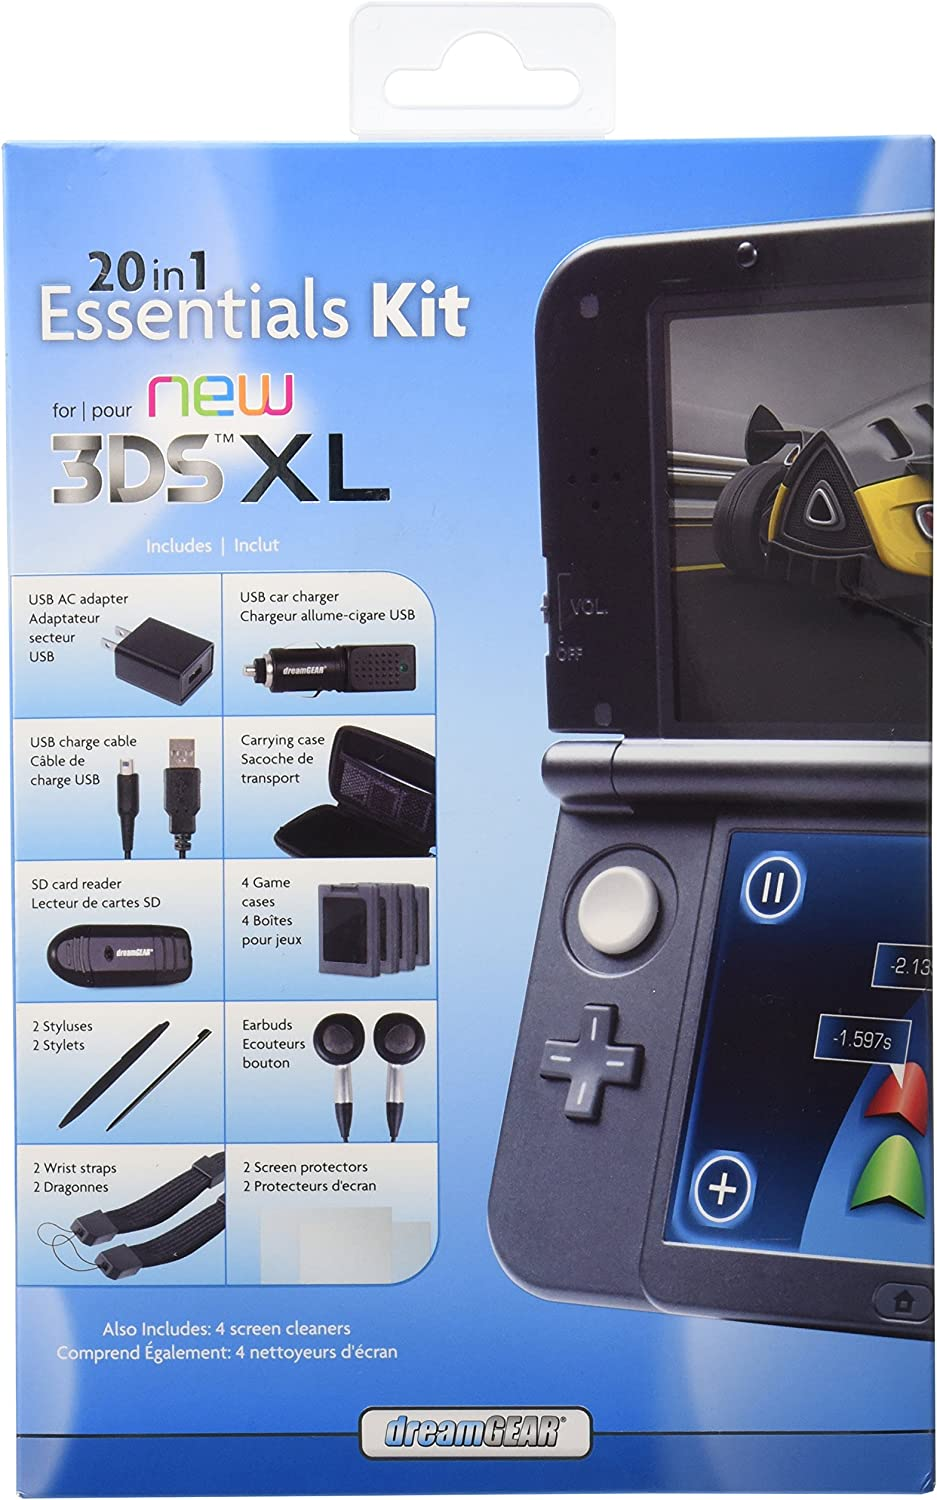 Amazon.com: dreamGEAR – 20 in 1 Essentials Kit for the New 3DSXL – Includes Both A/C Charger and Car Charger, Case and Others: nintendo 3ds: Video Games